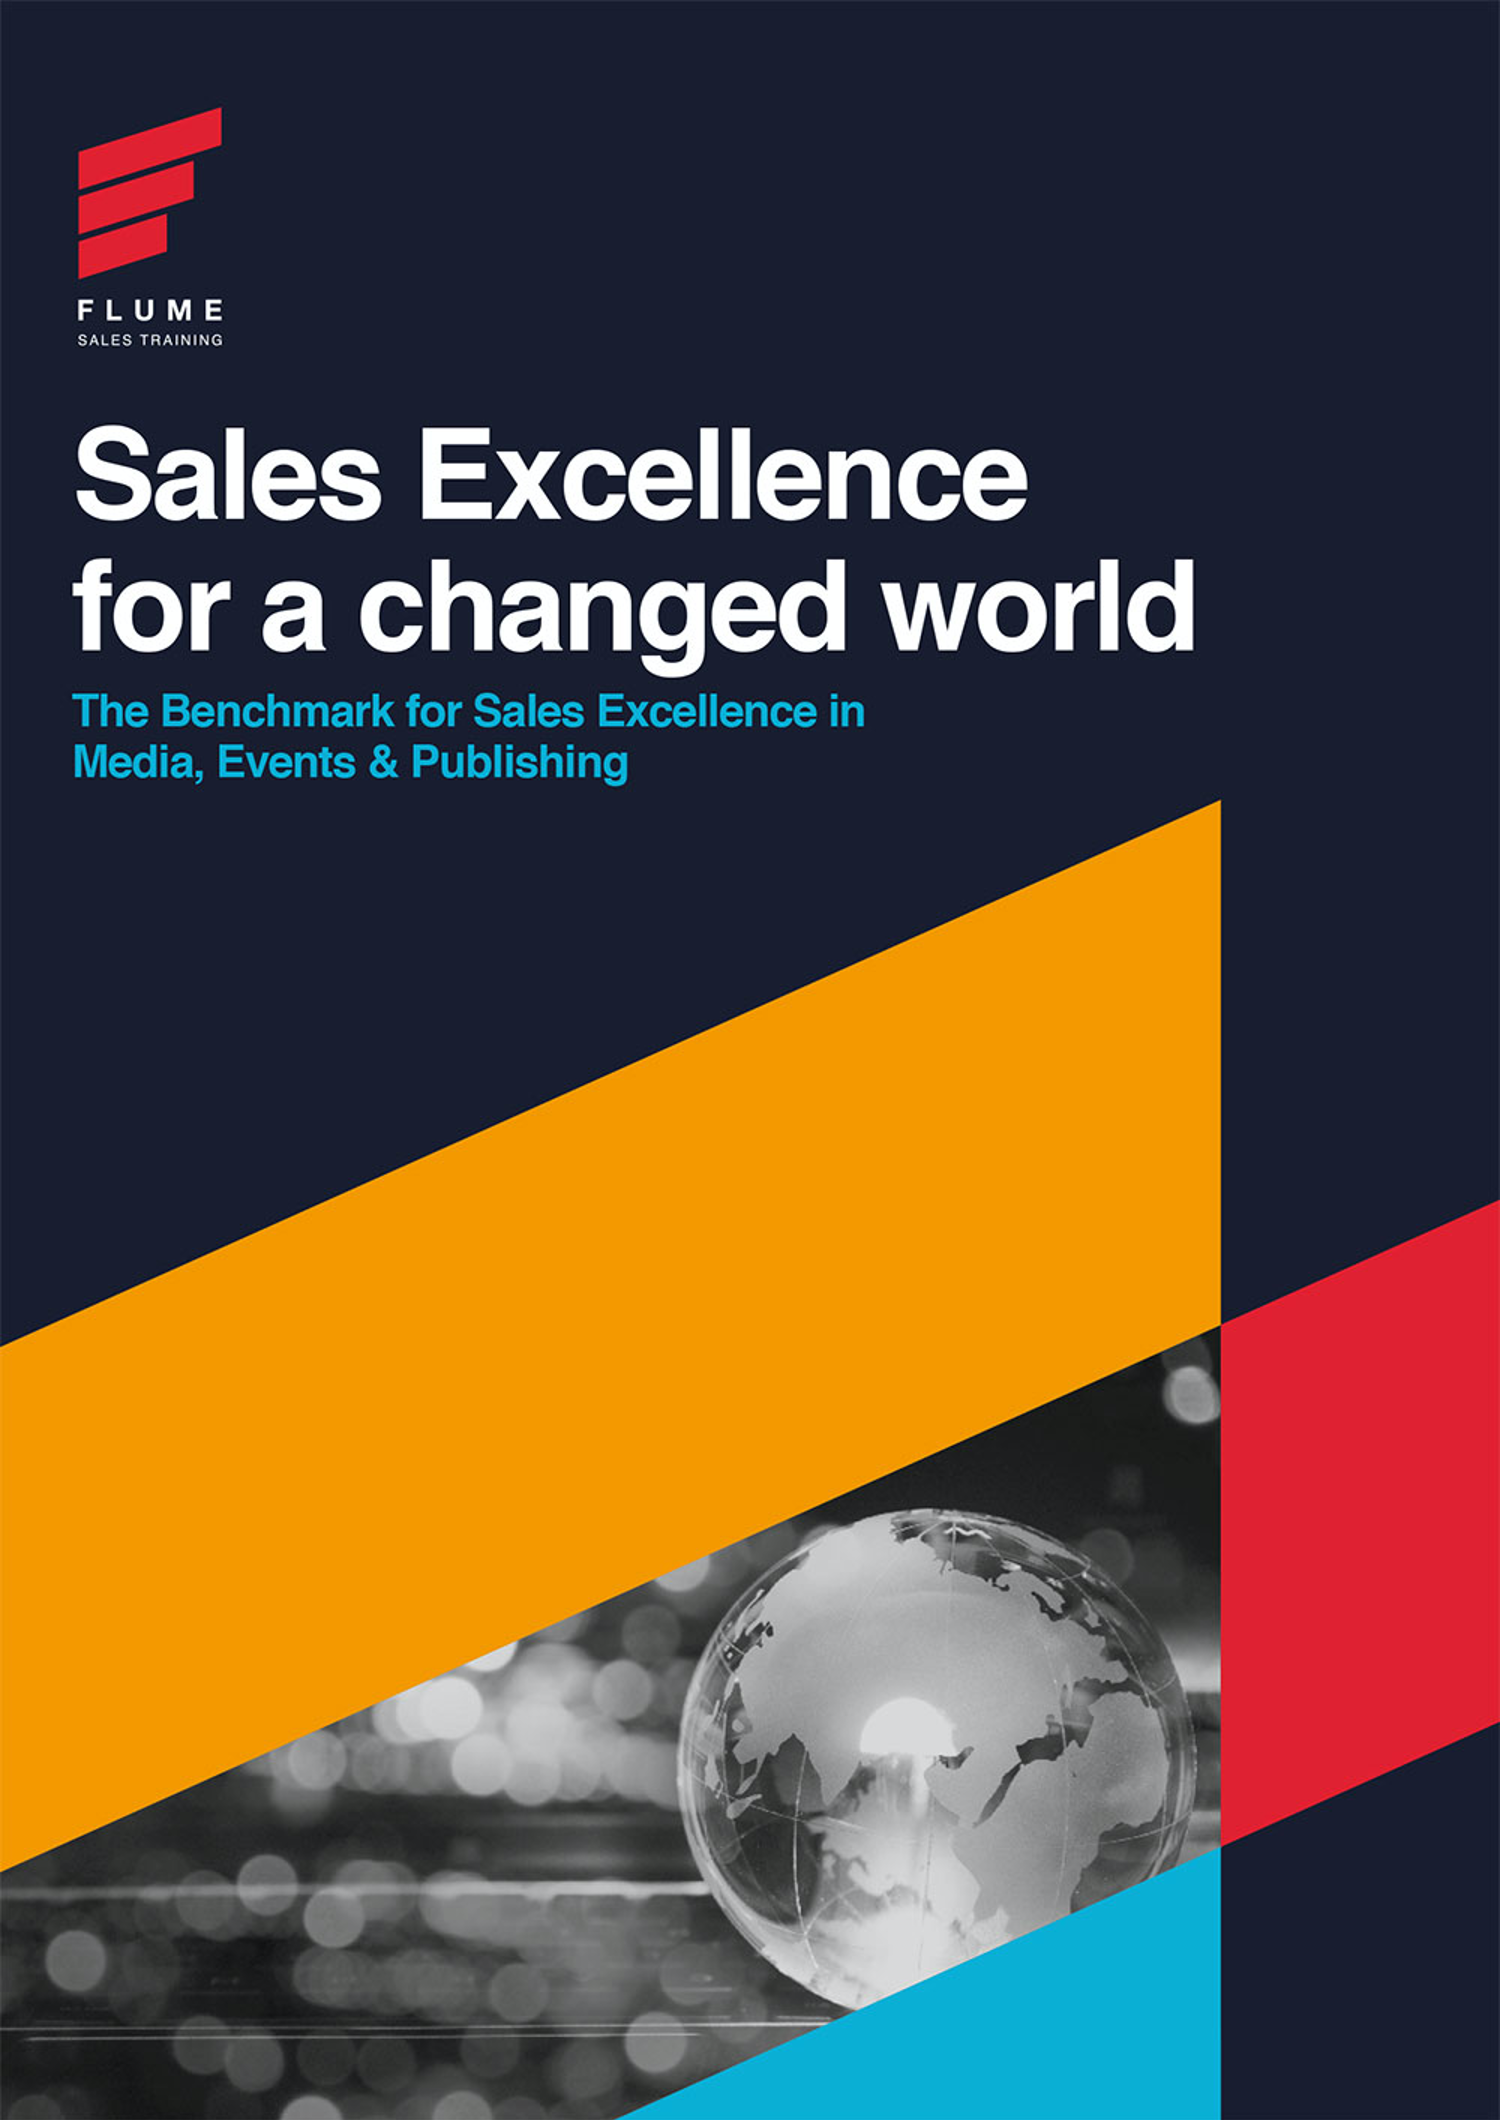 The Benchmark for Sales Excellence for a Changed World